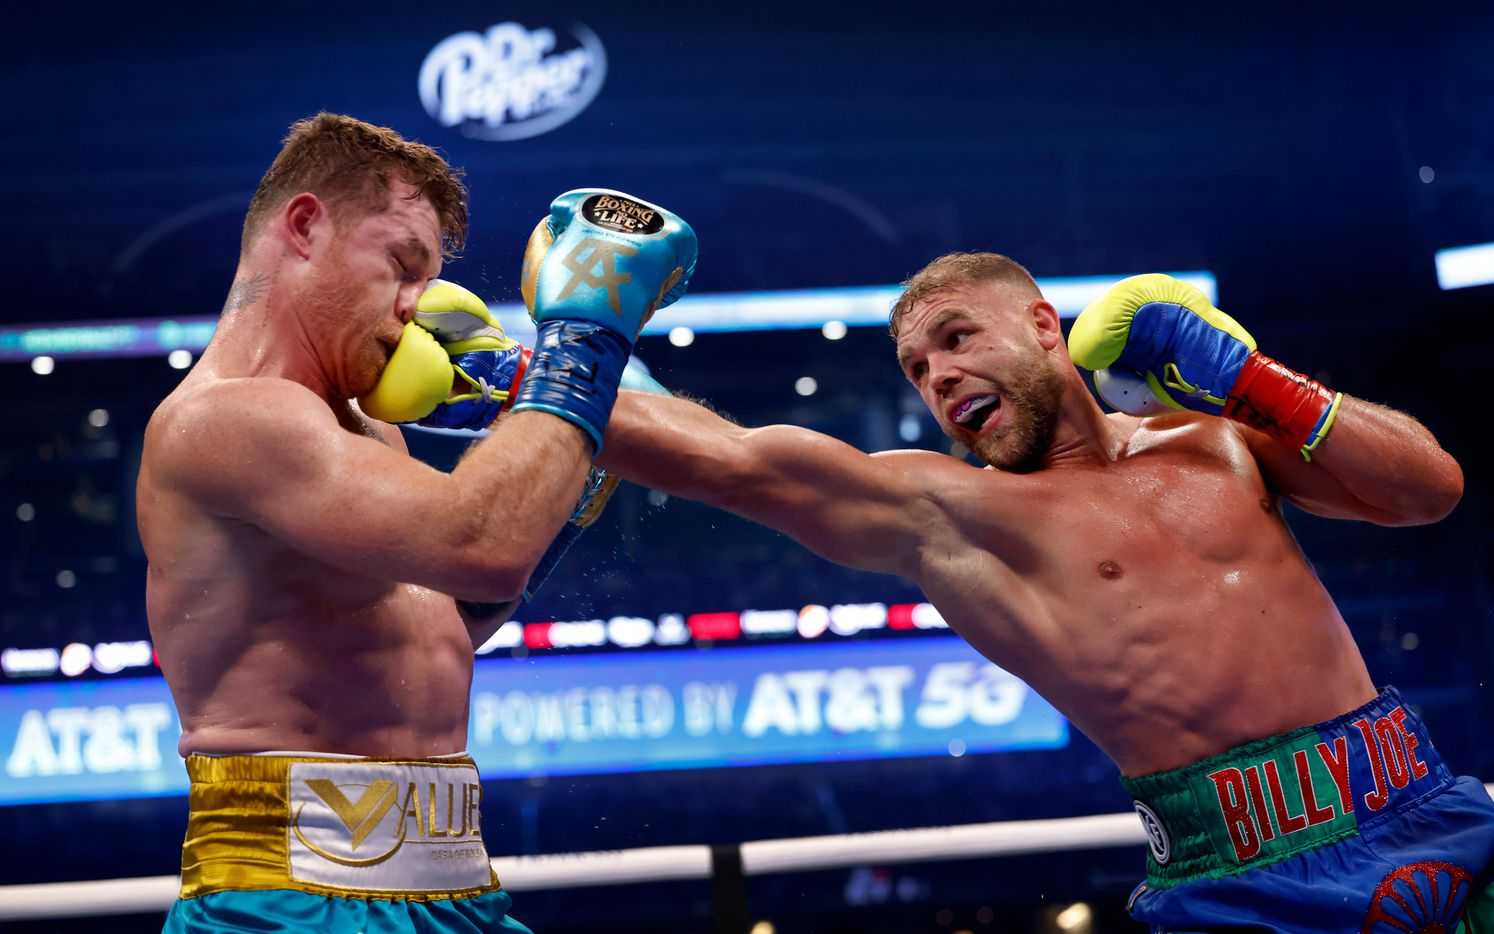 Boxer Billy Joe Saunders (right) gets a clean shot to the face of Canelo Alvarez during their unified super middleweight title fight at AT&T Stadium in Arlington, Saturday, May 8, 2021. Saunders couldn't go on to the ninth round because he sustained an eye injury and could not see. (Tom Fox/The Dallas Morning News)